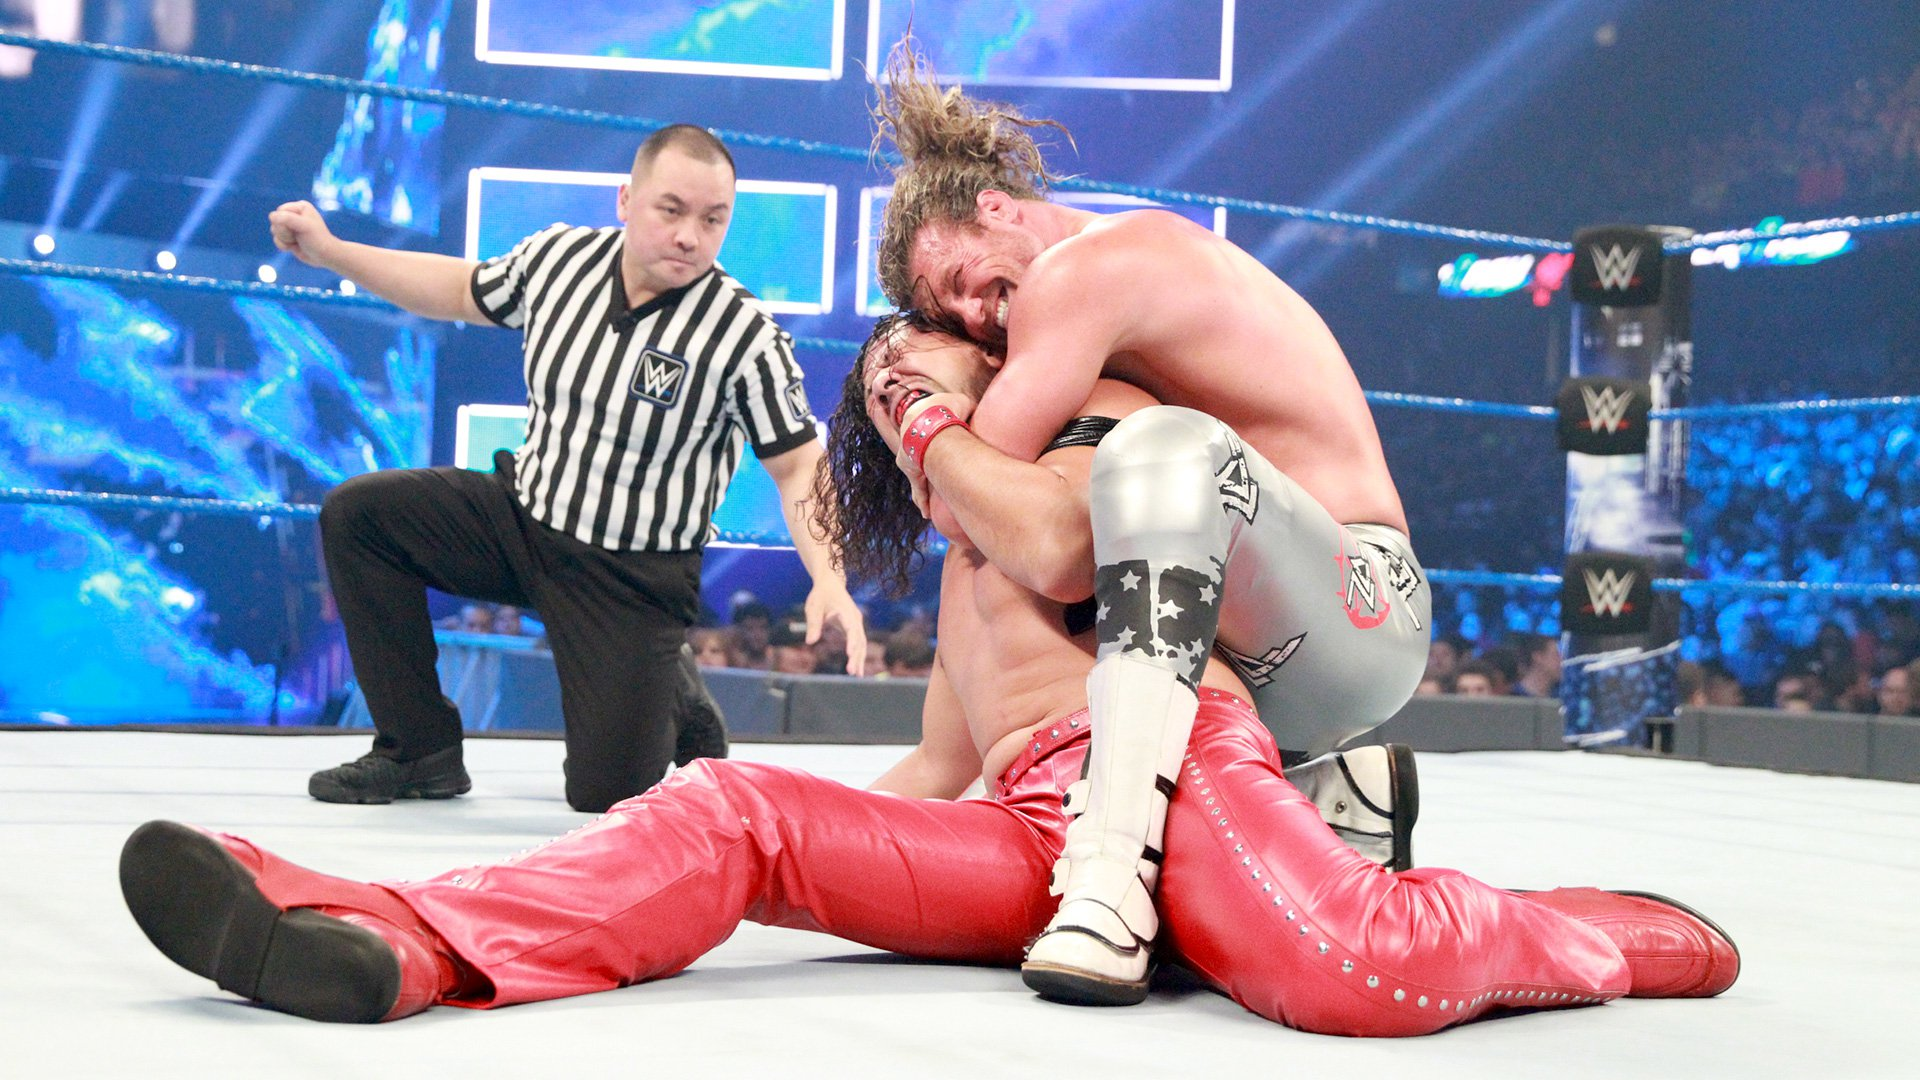 Ziggler relies on his amateur wrestling background to keep Nakamura grounded.